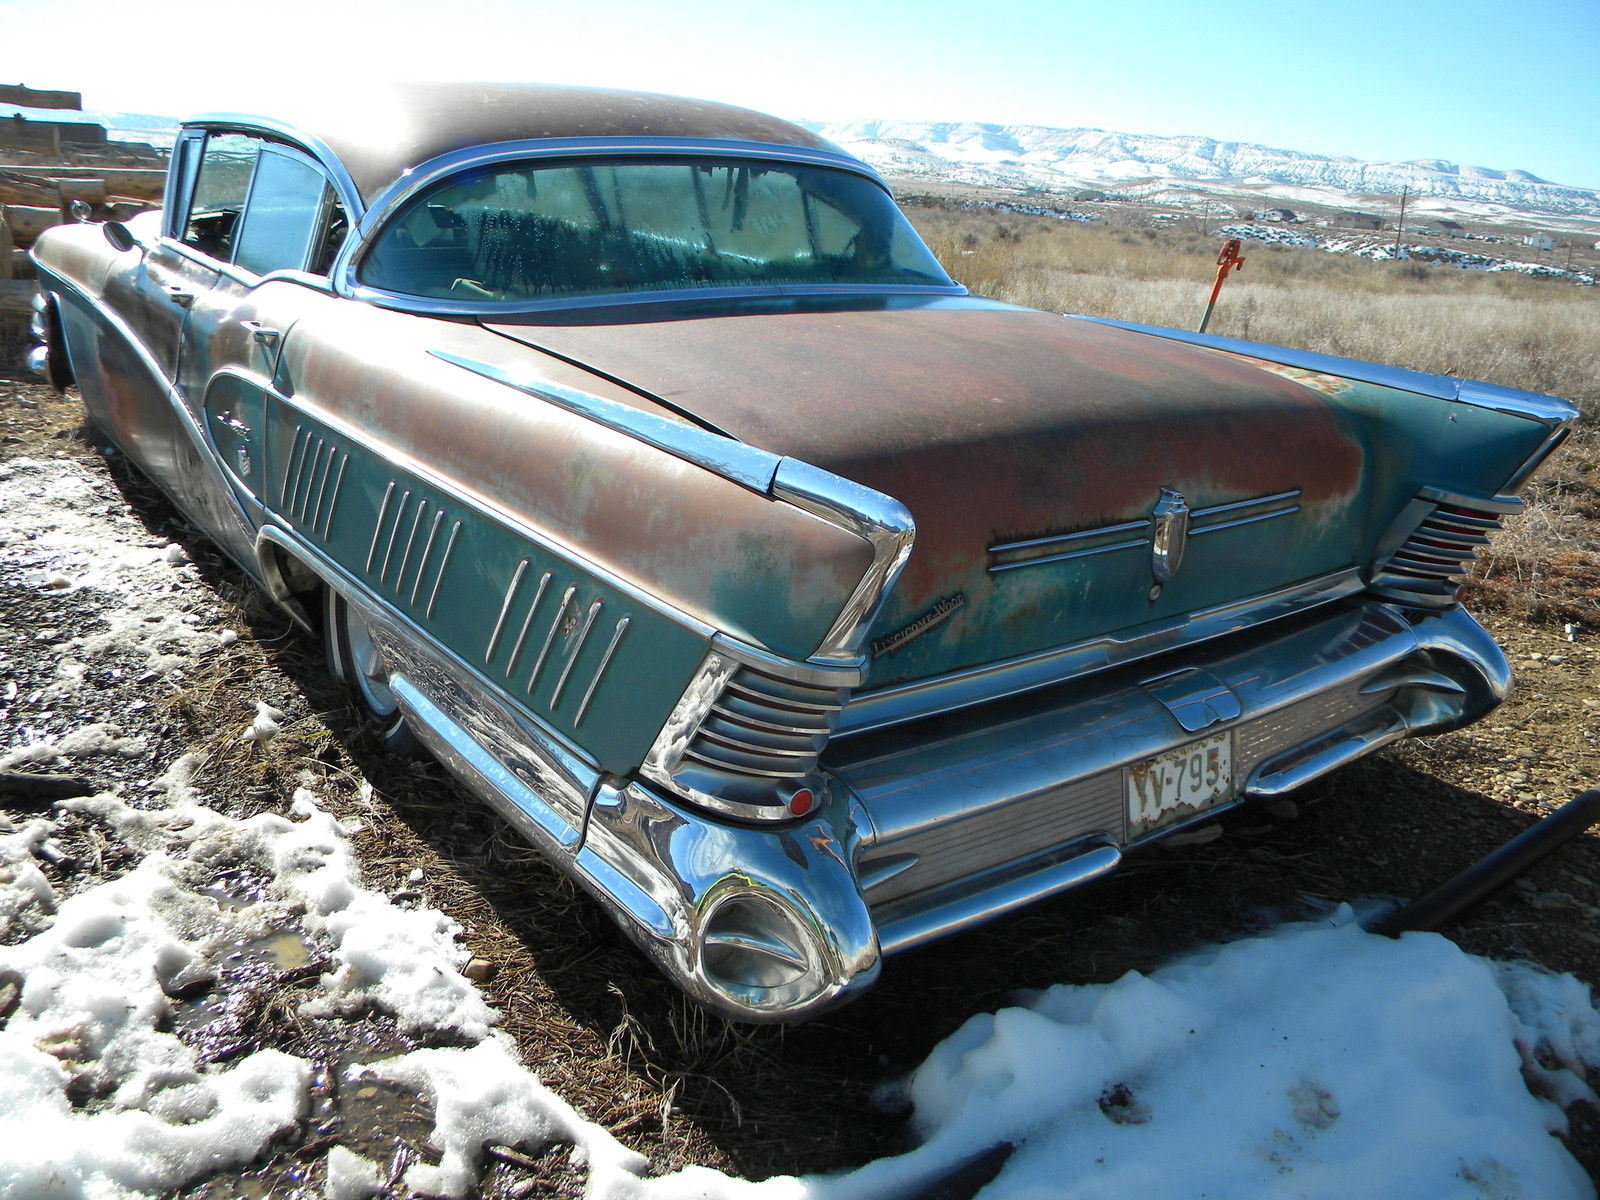 58 BUICK LIMITED 50th Anniversary Special 5571 made CHROME ...